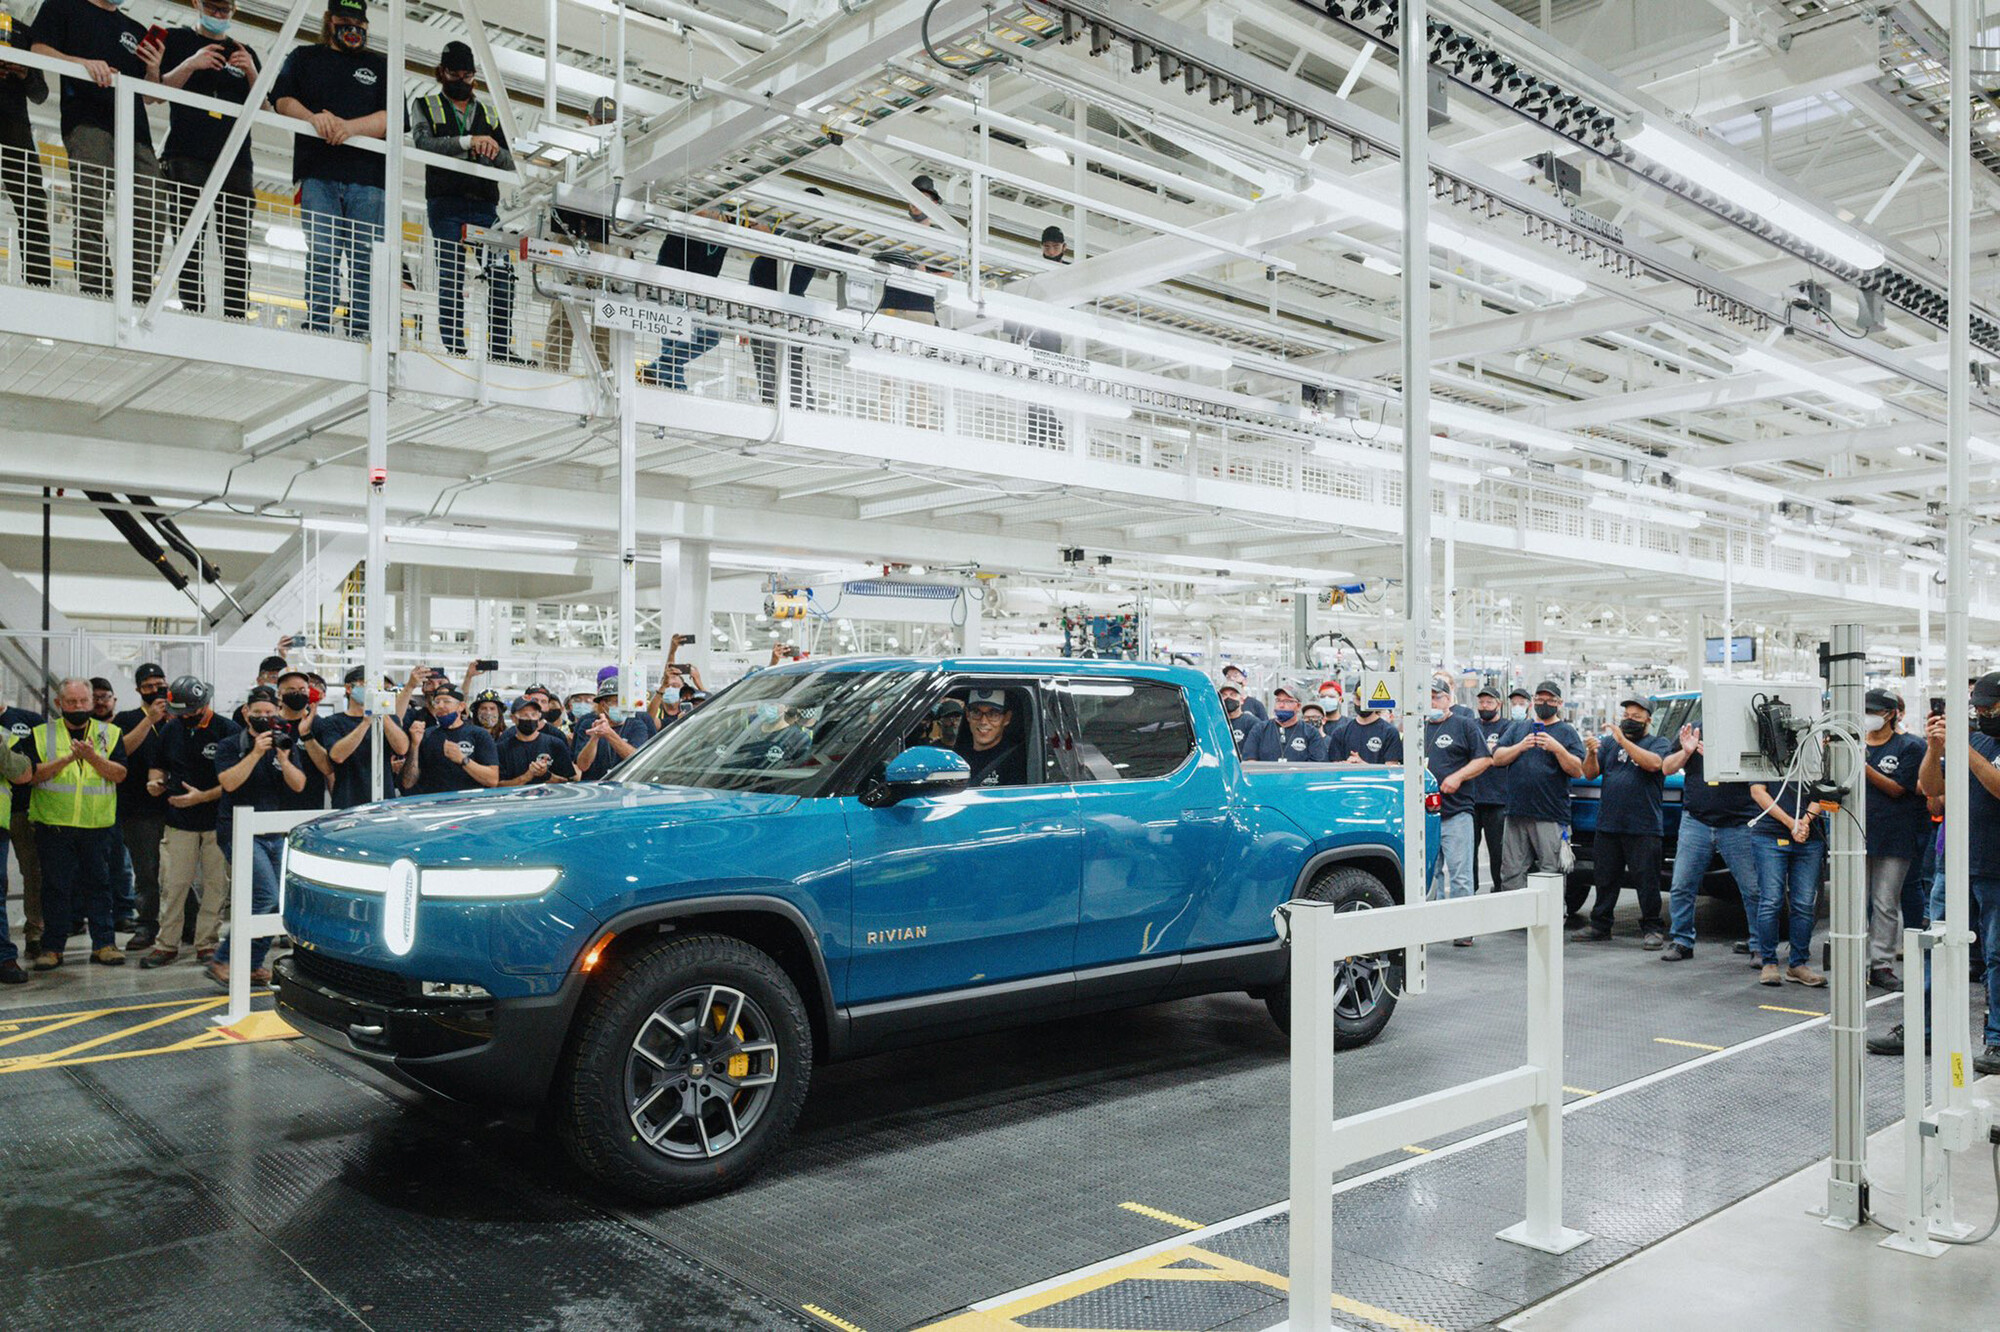 Rivian beats Tesla, GM and Ford to build the first electric pickup truck